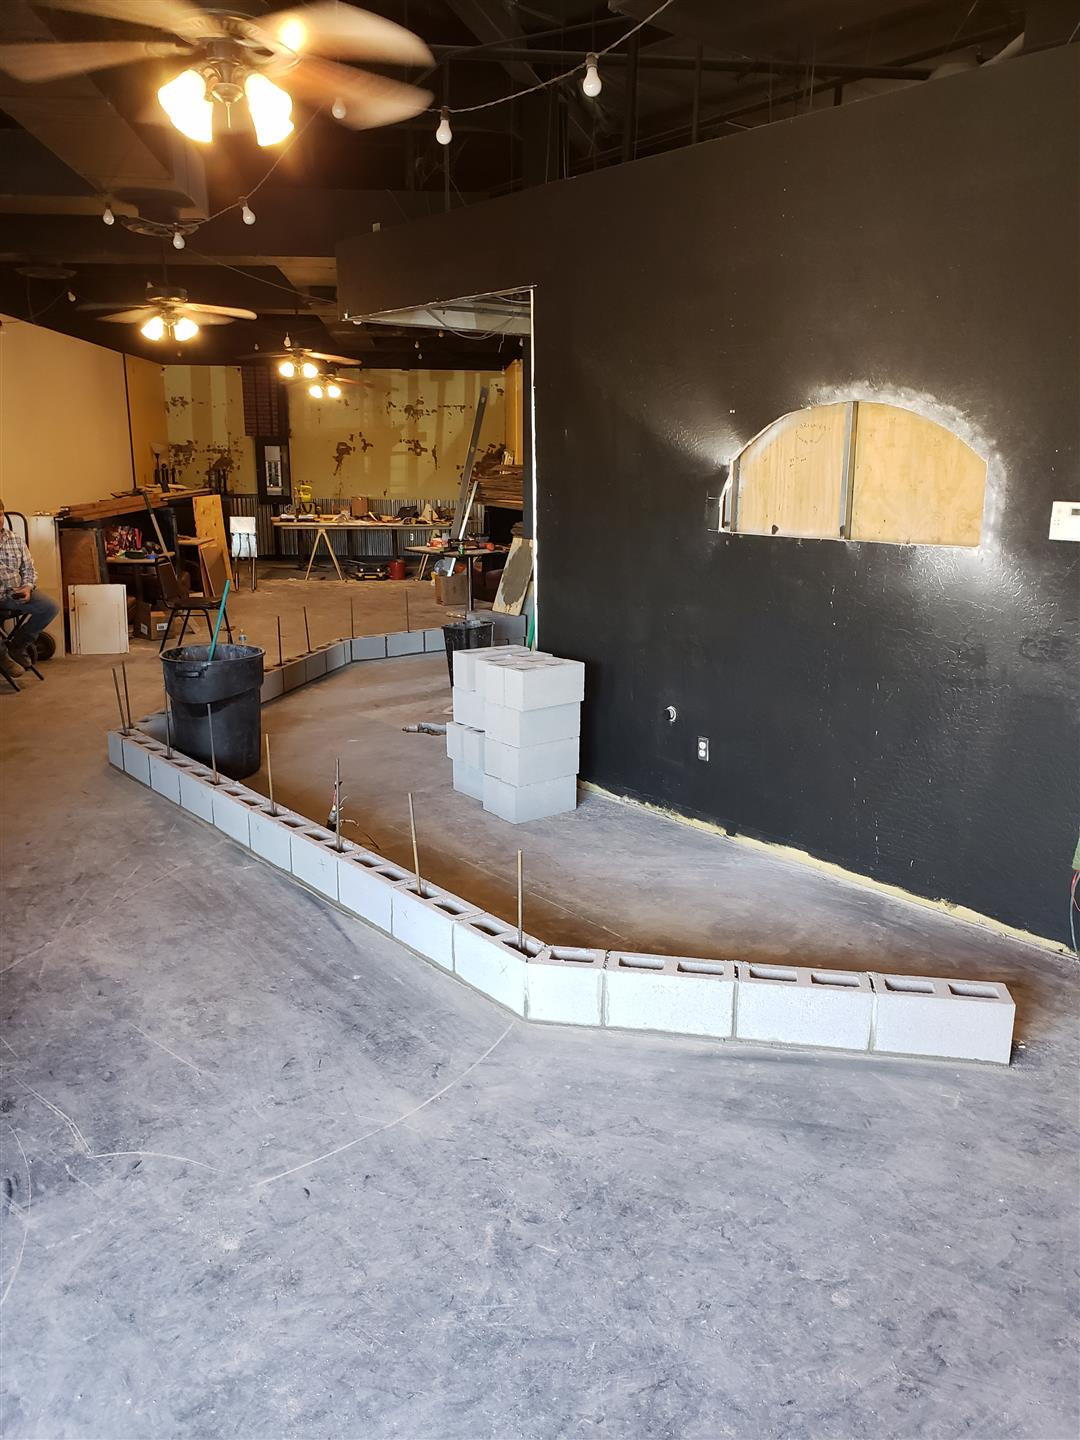 interior view of renovations on building - painting walls and laying concrete for floor